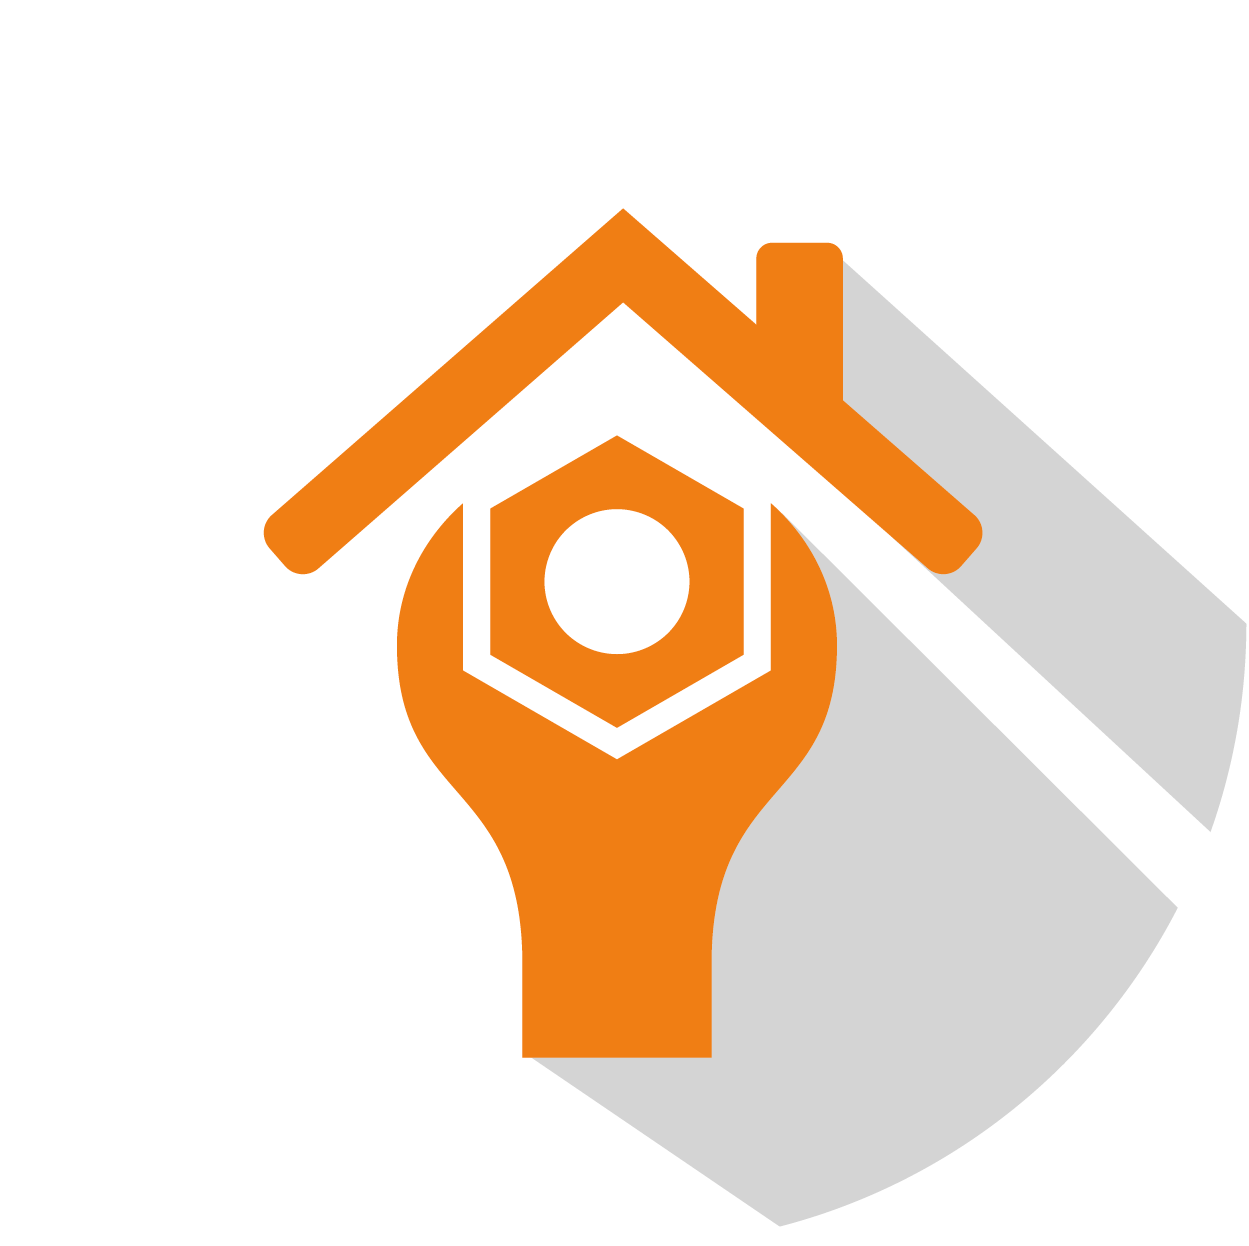 Roof repair icon